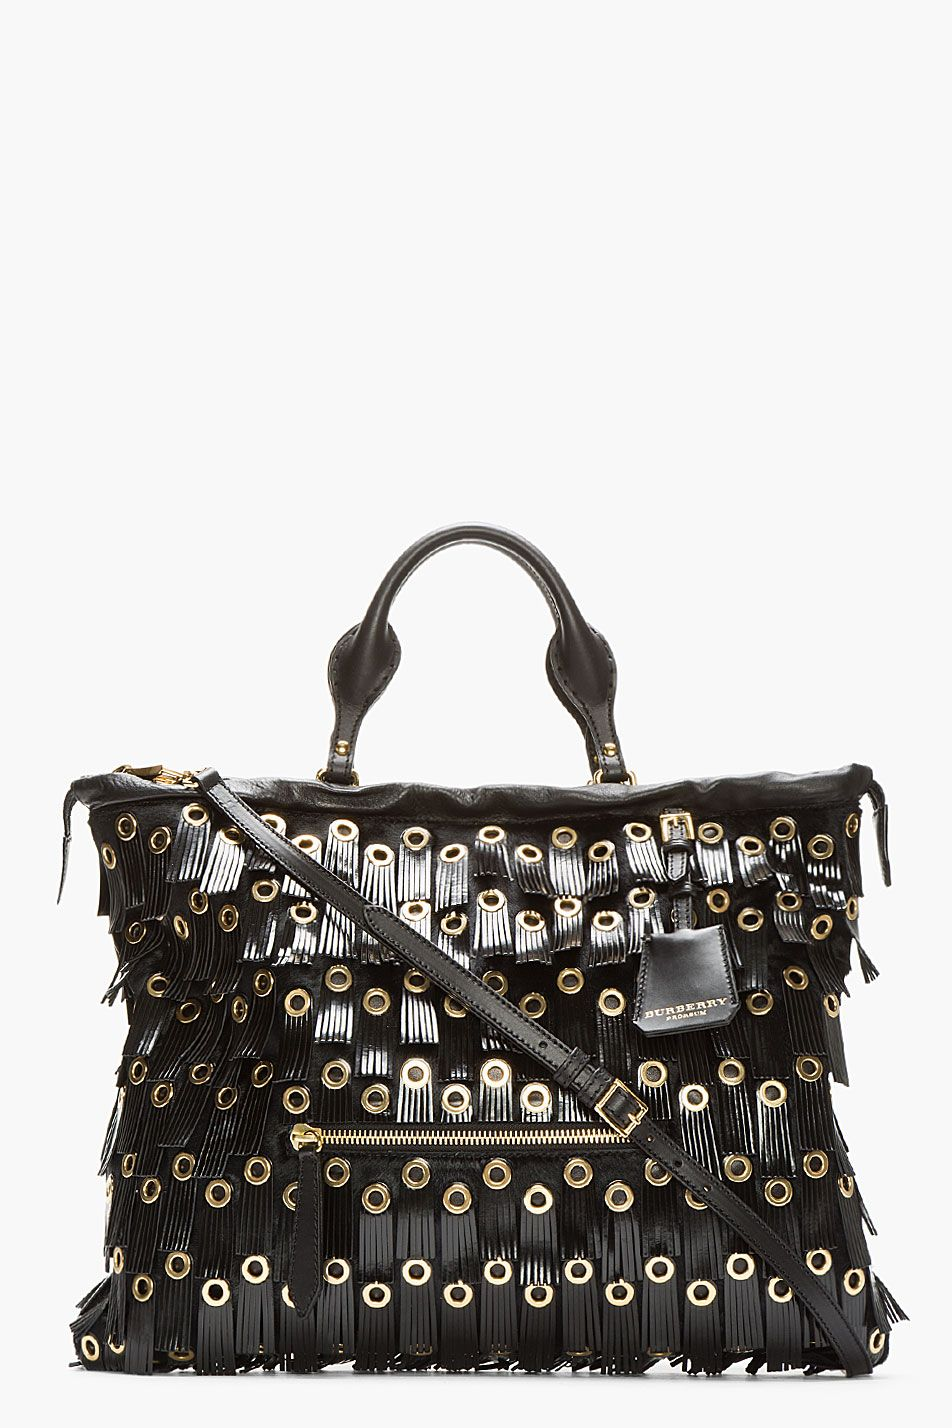 BURBERRY PRORSUM Black Patent Leather Fringed Grommet Tote